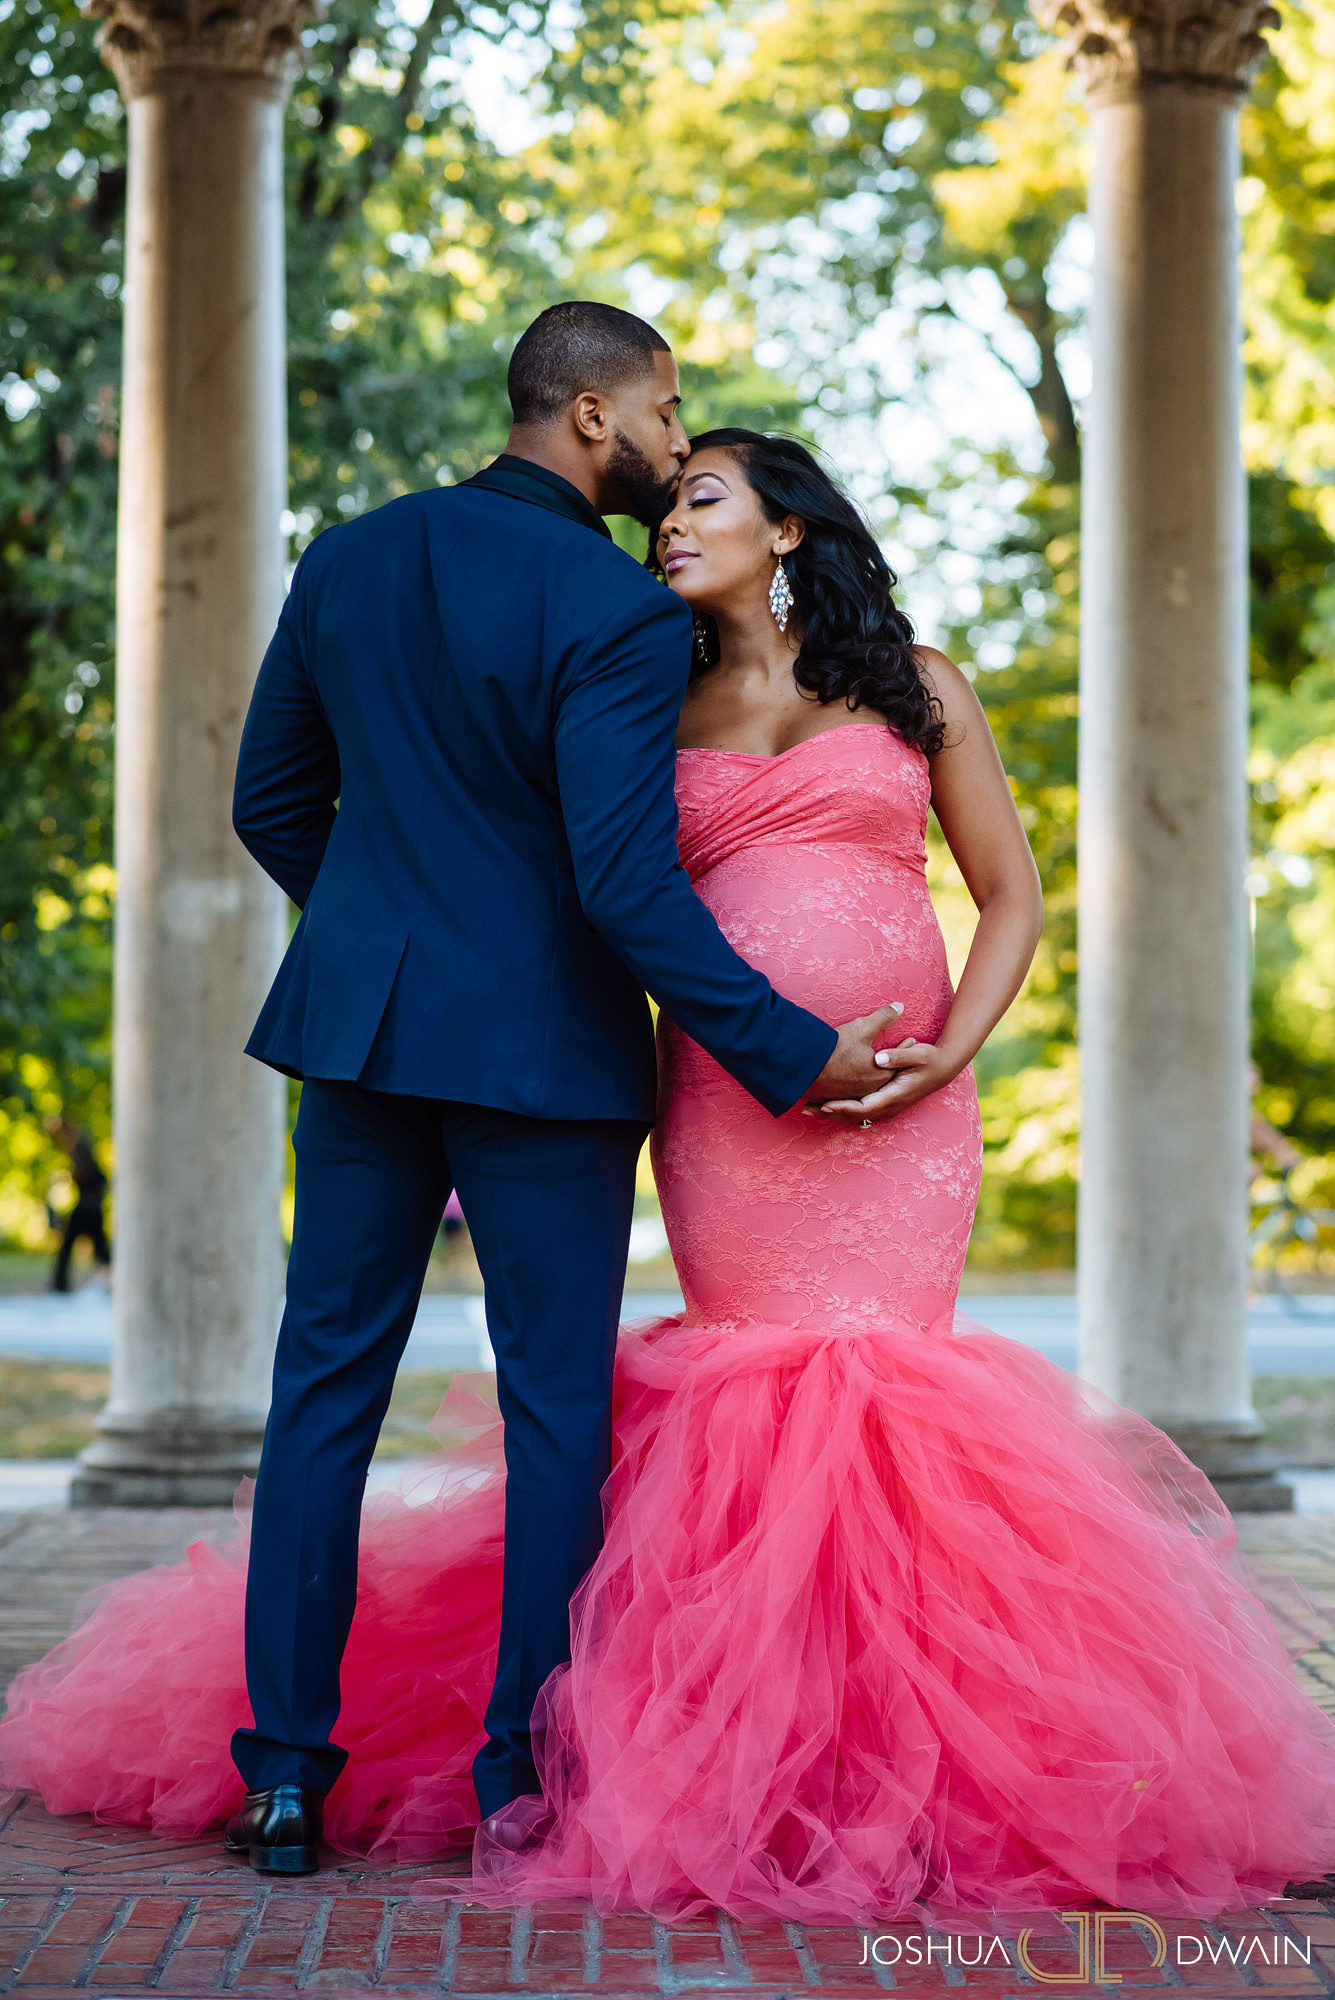 khadeen-devale-013-brooklyn-family-maternity-photographer-joshua-dwain